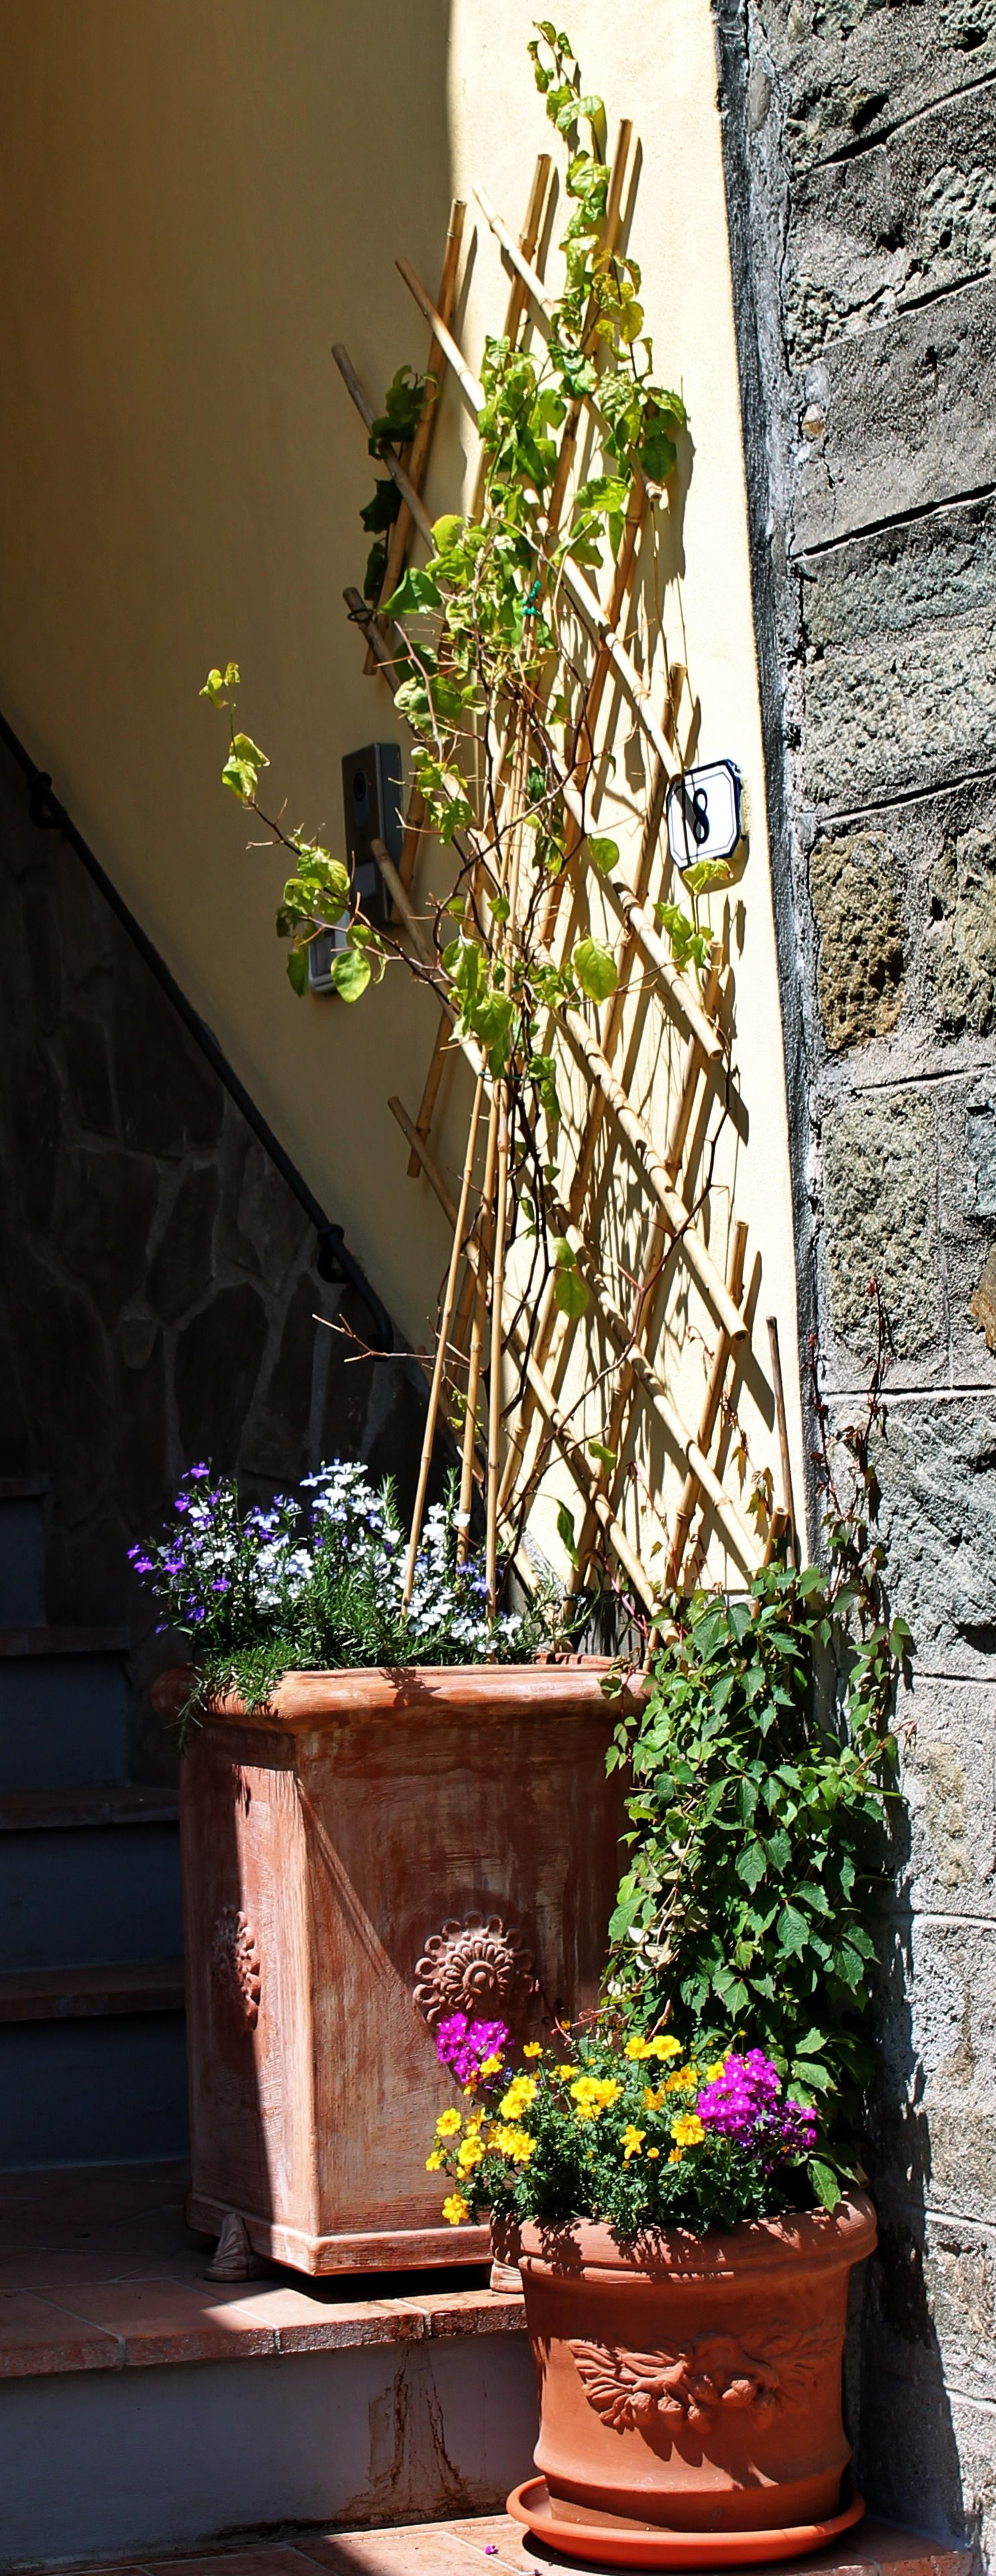 BAGNONE (Toscana) - Italy - by Guido Tosatto   gardening by the yard ...